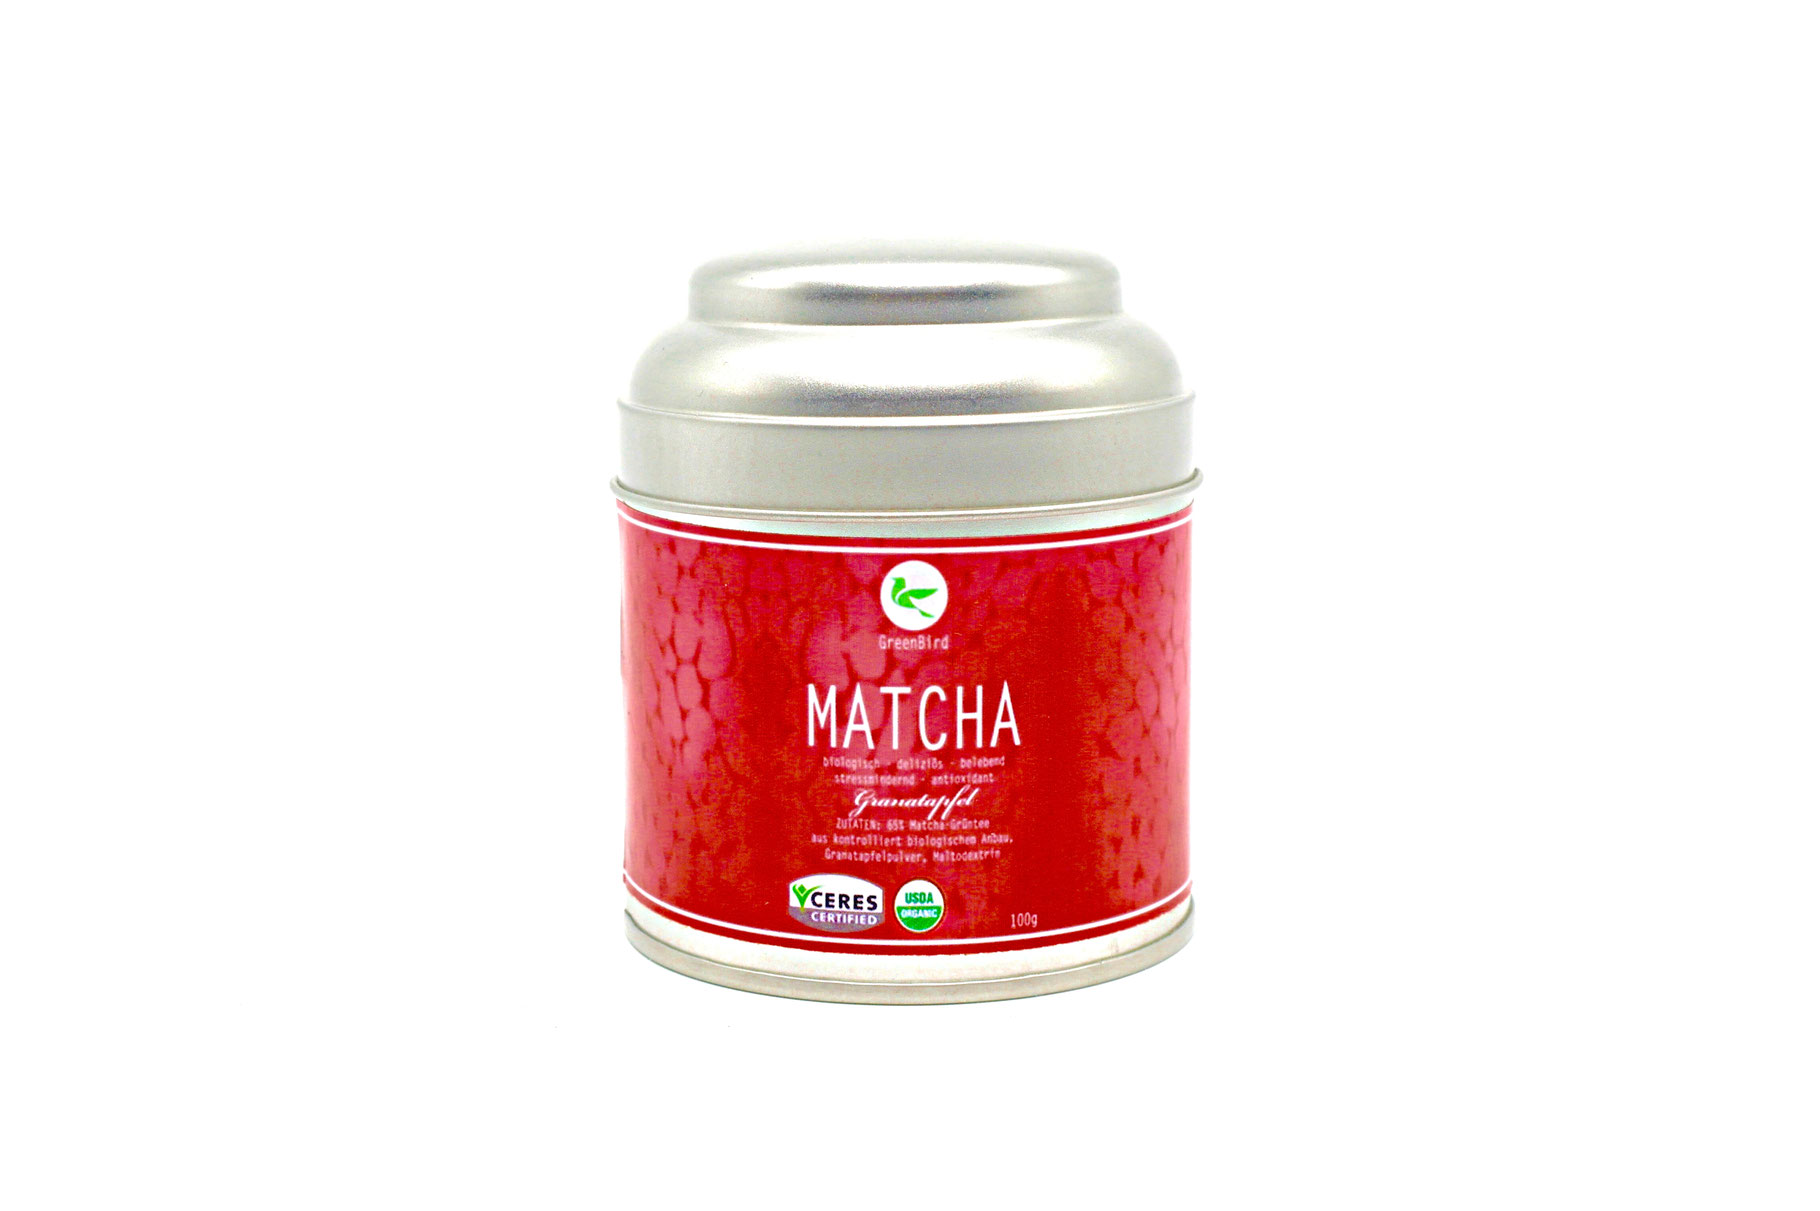 matcha tee granatapfel bio 100 g matcha tee g nstig kaufen auf ich. Black Bedroom Furniture Sets. Home Design Ideas